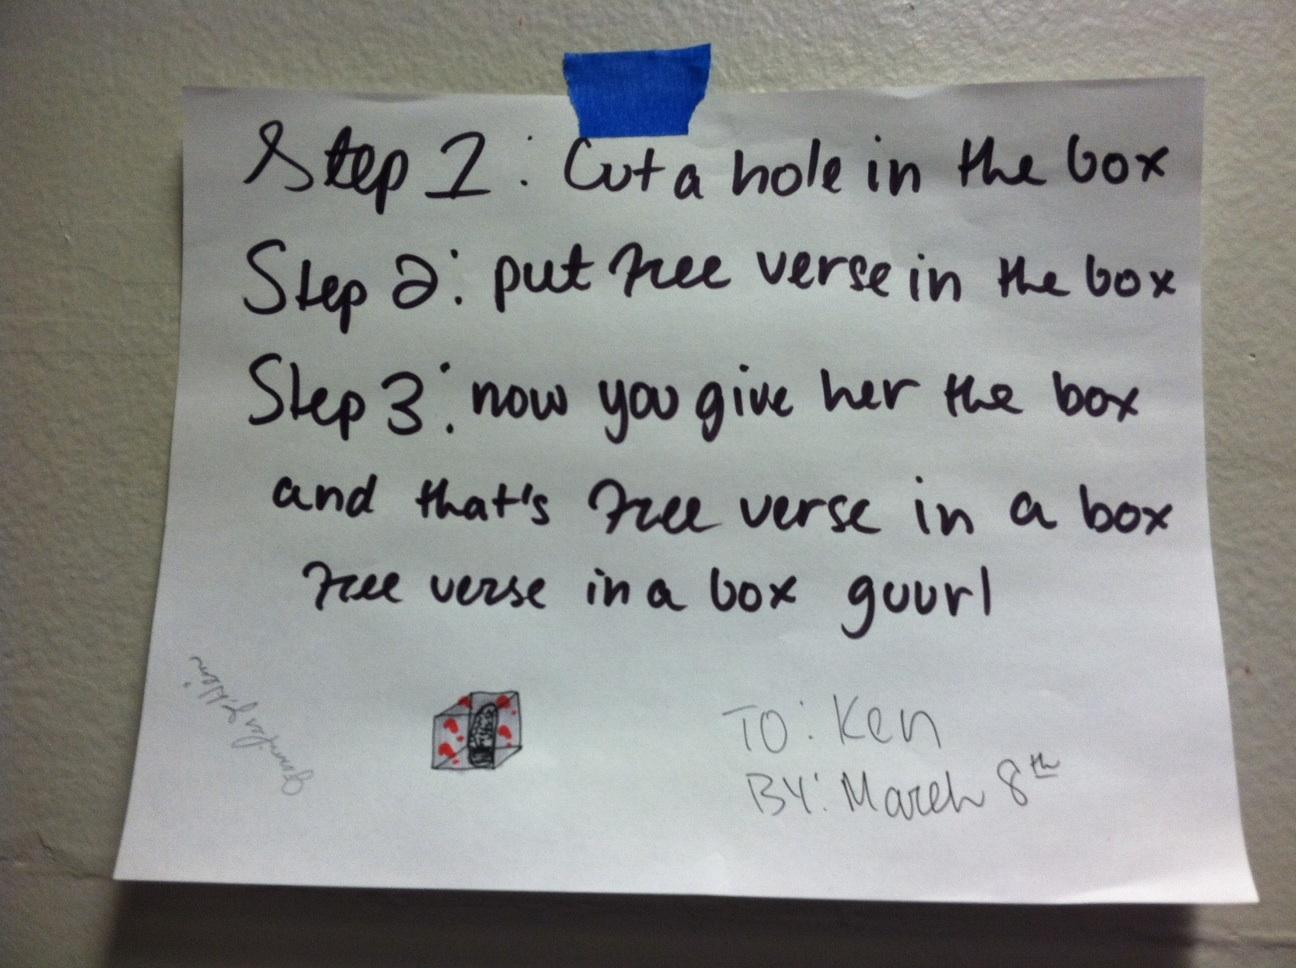 One of many Free Verse posters made by McGraw's Creative Writing Class